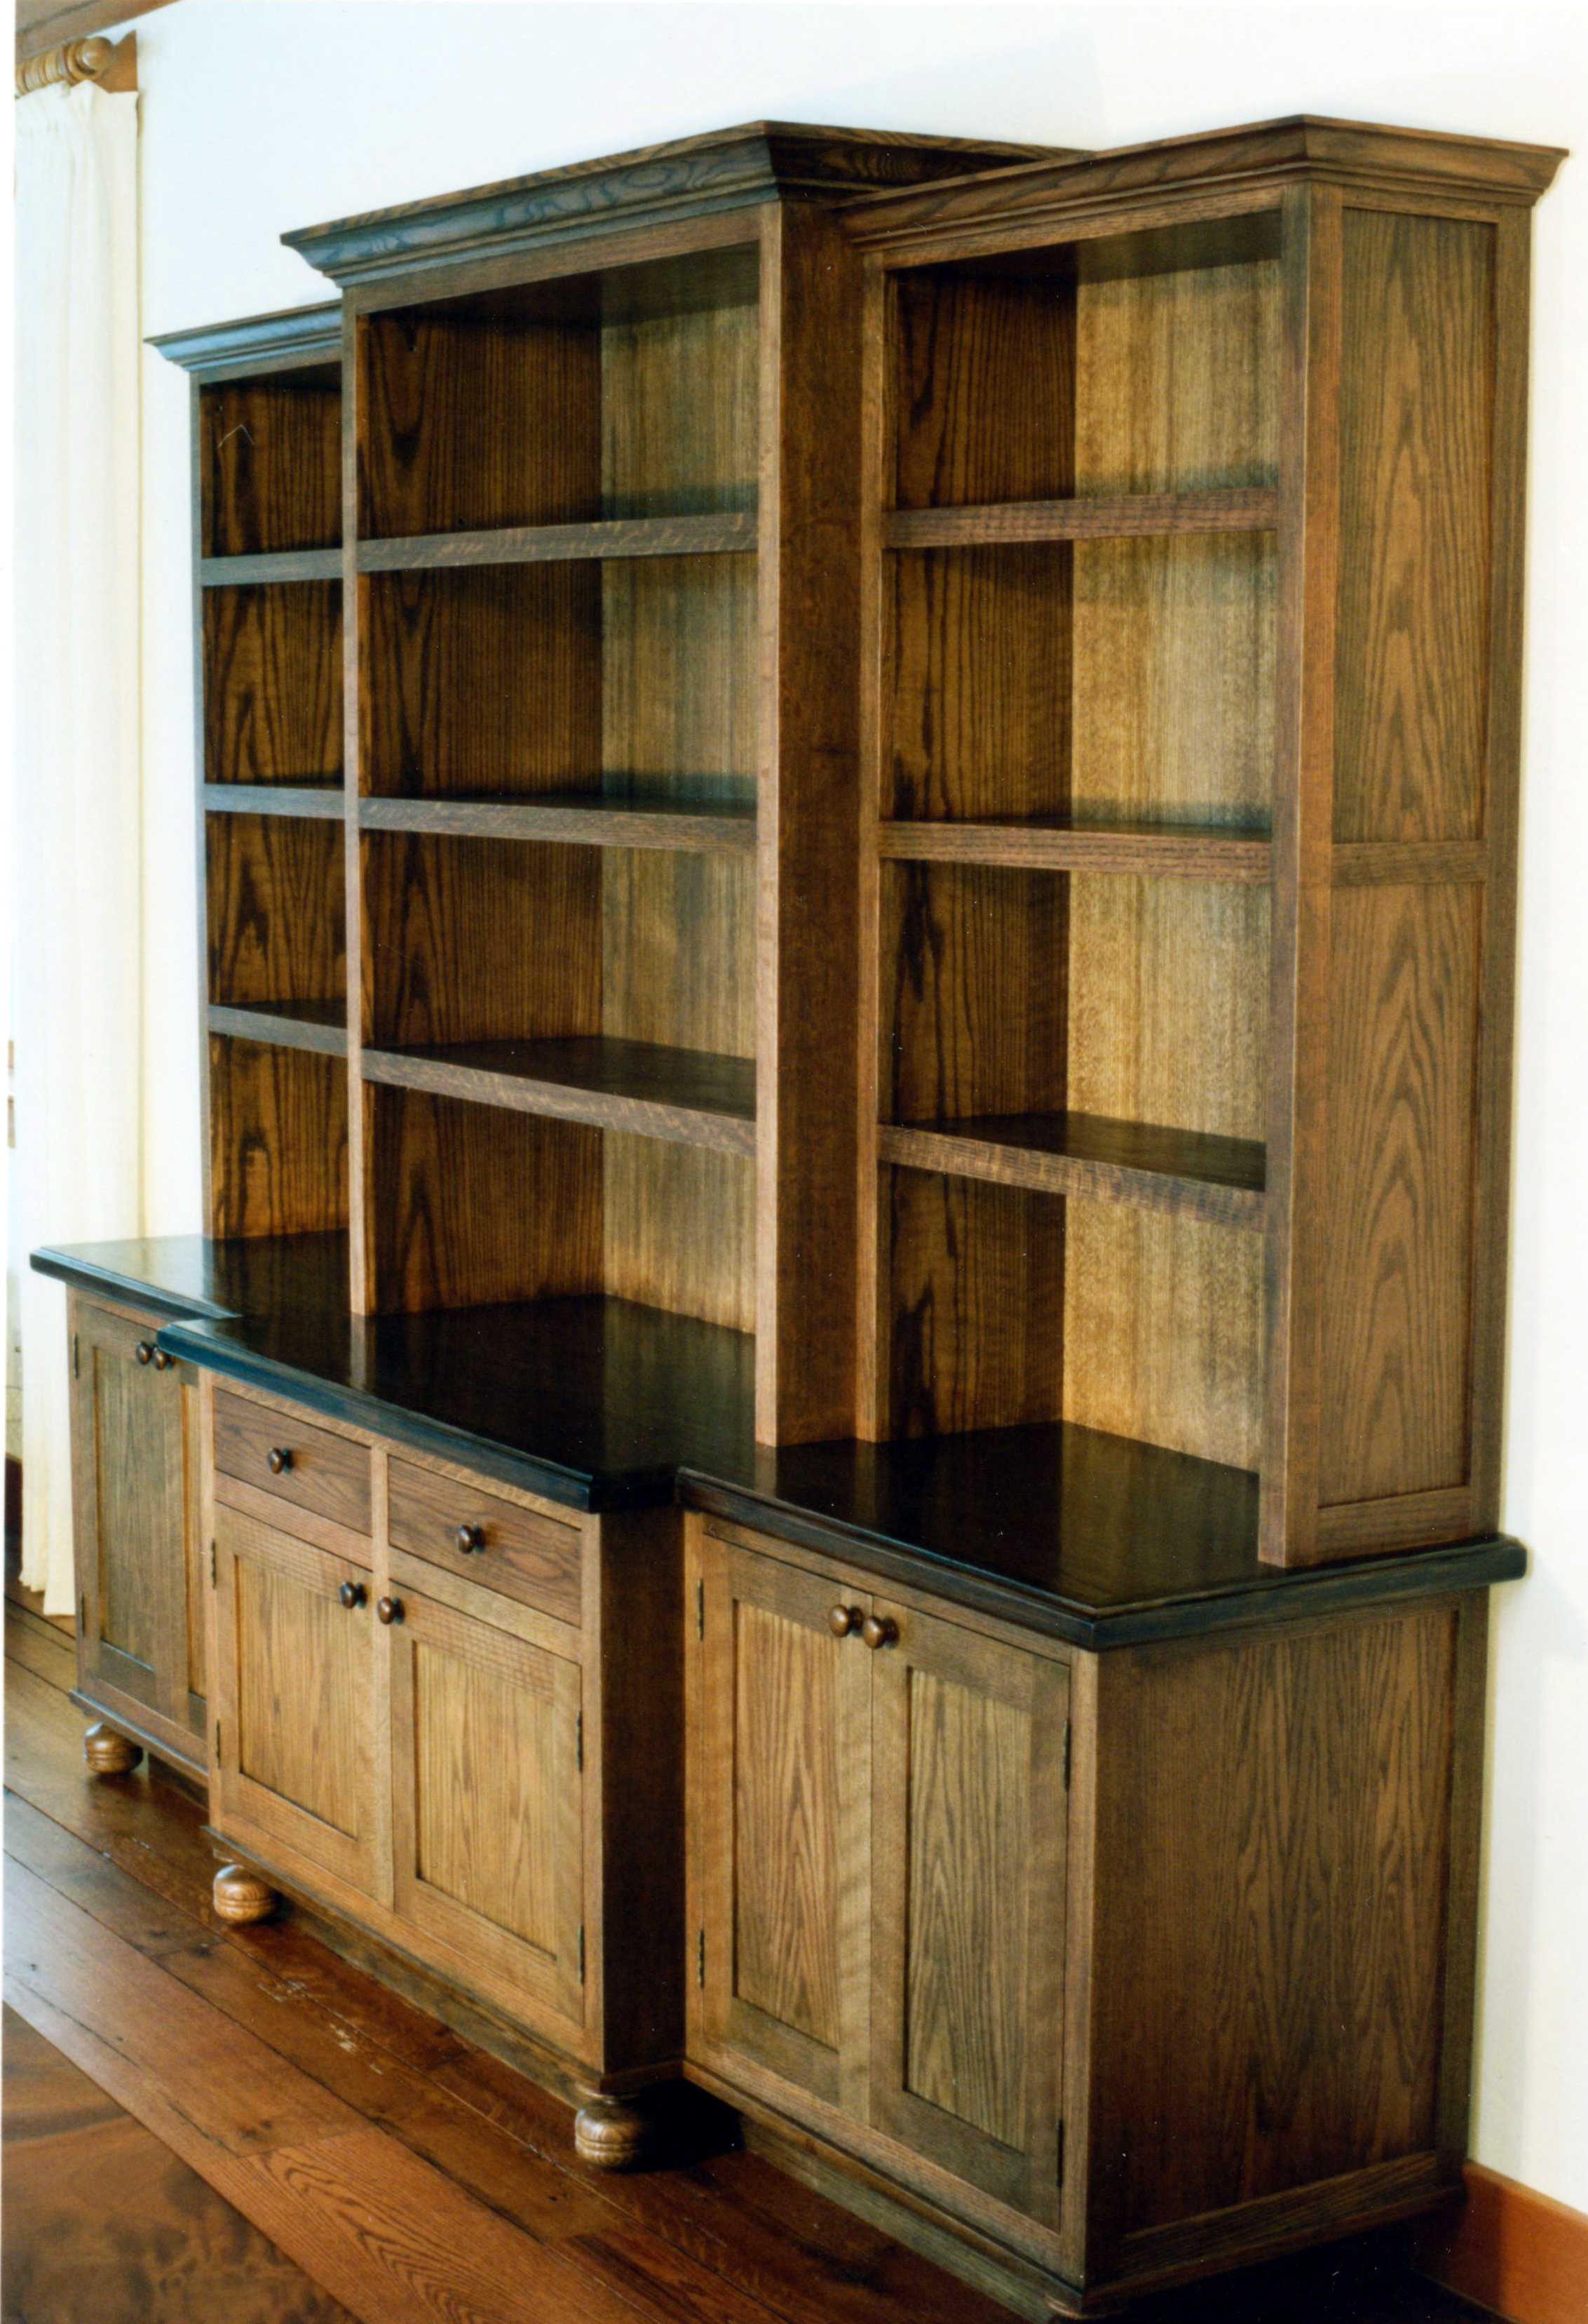 cox_bookcase_new.jpg